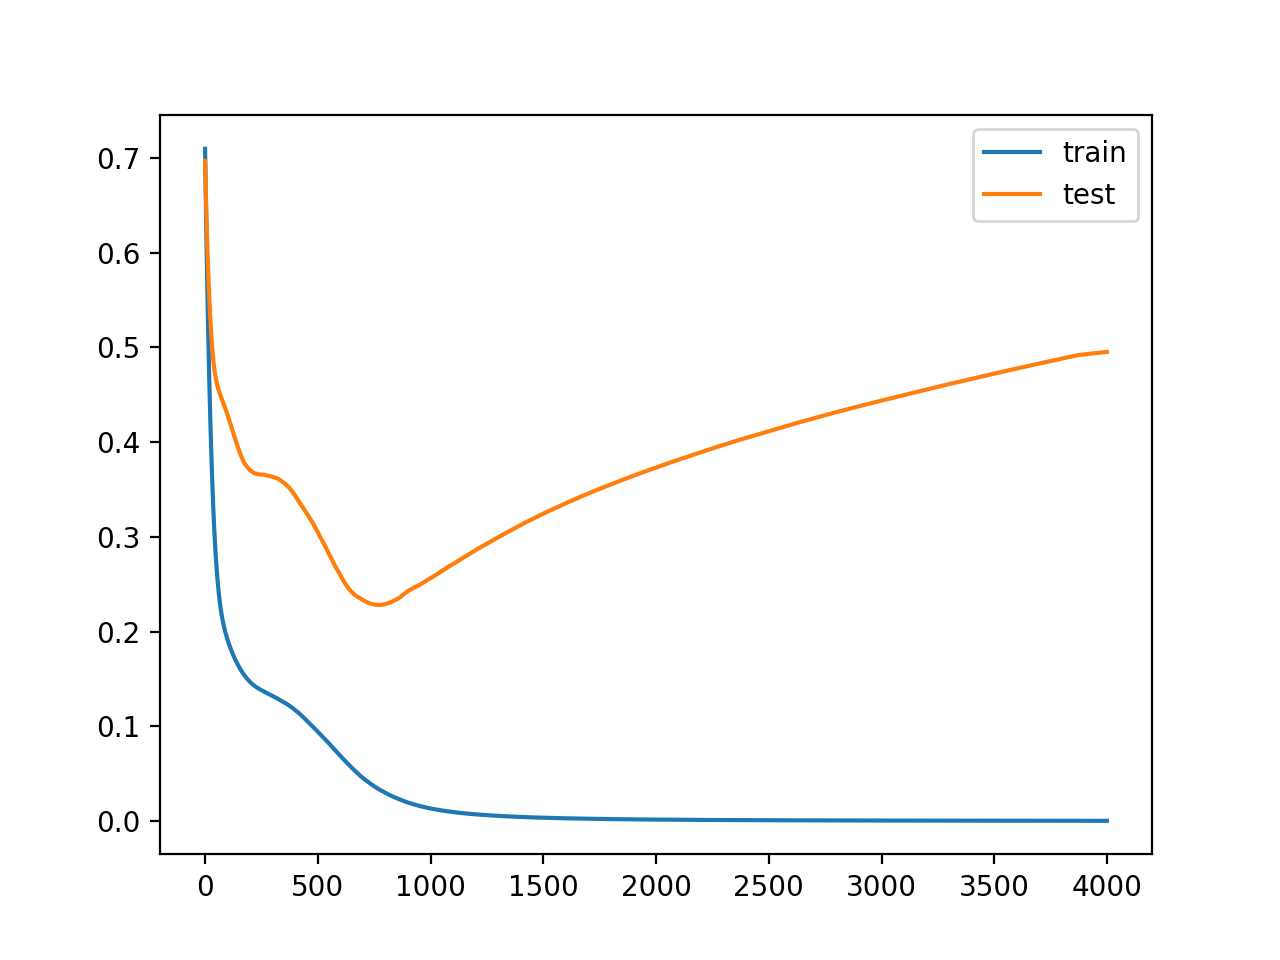 Line Plots of Loss on Train and Test Datasets While Training Showing an Overfit Model